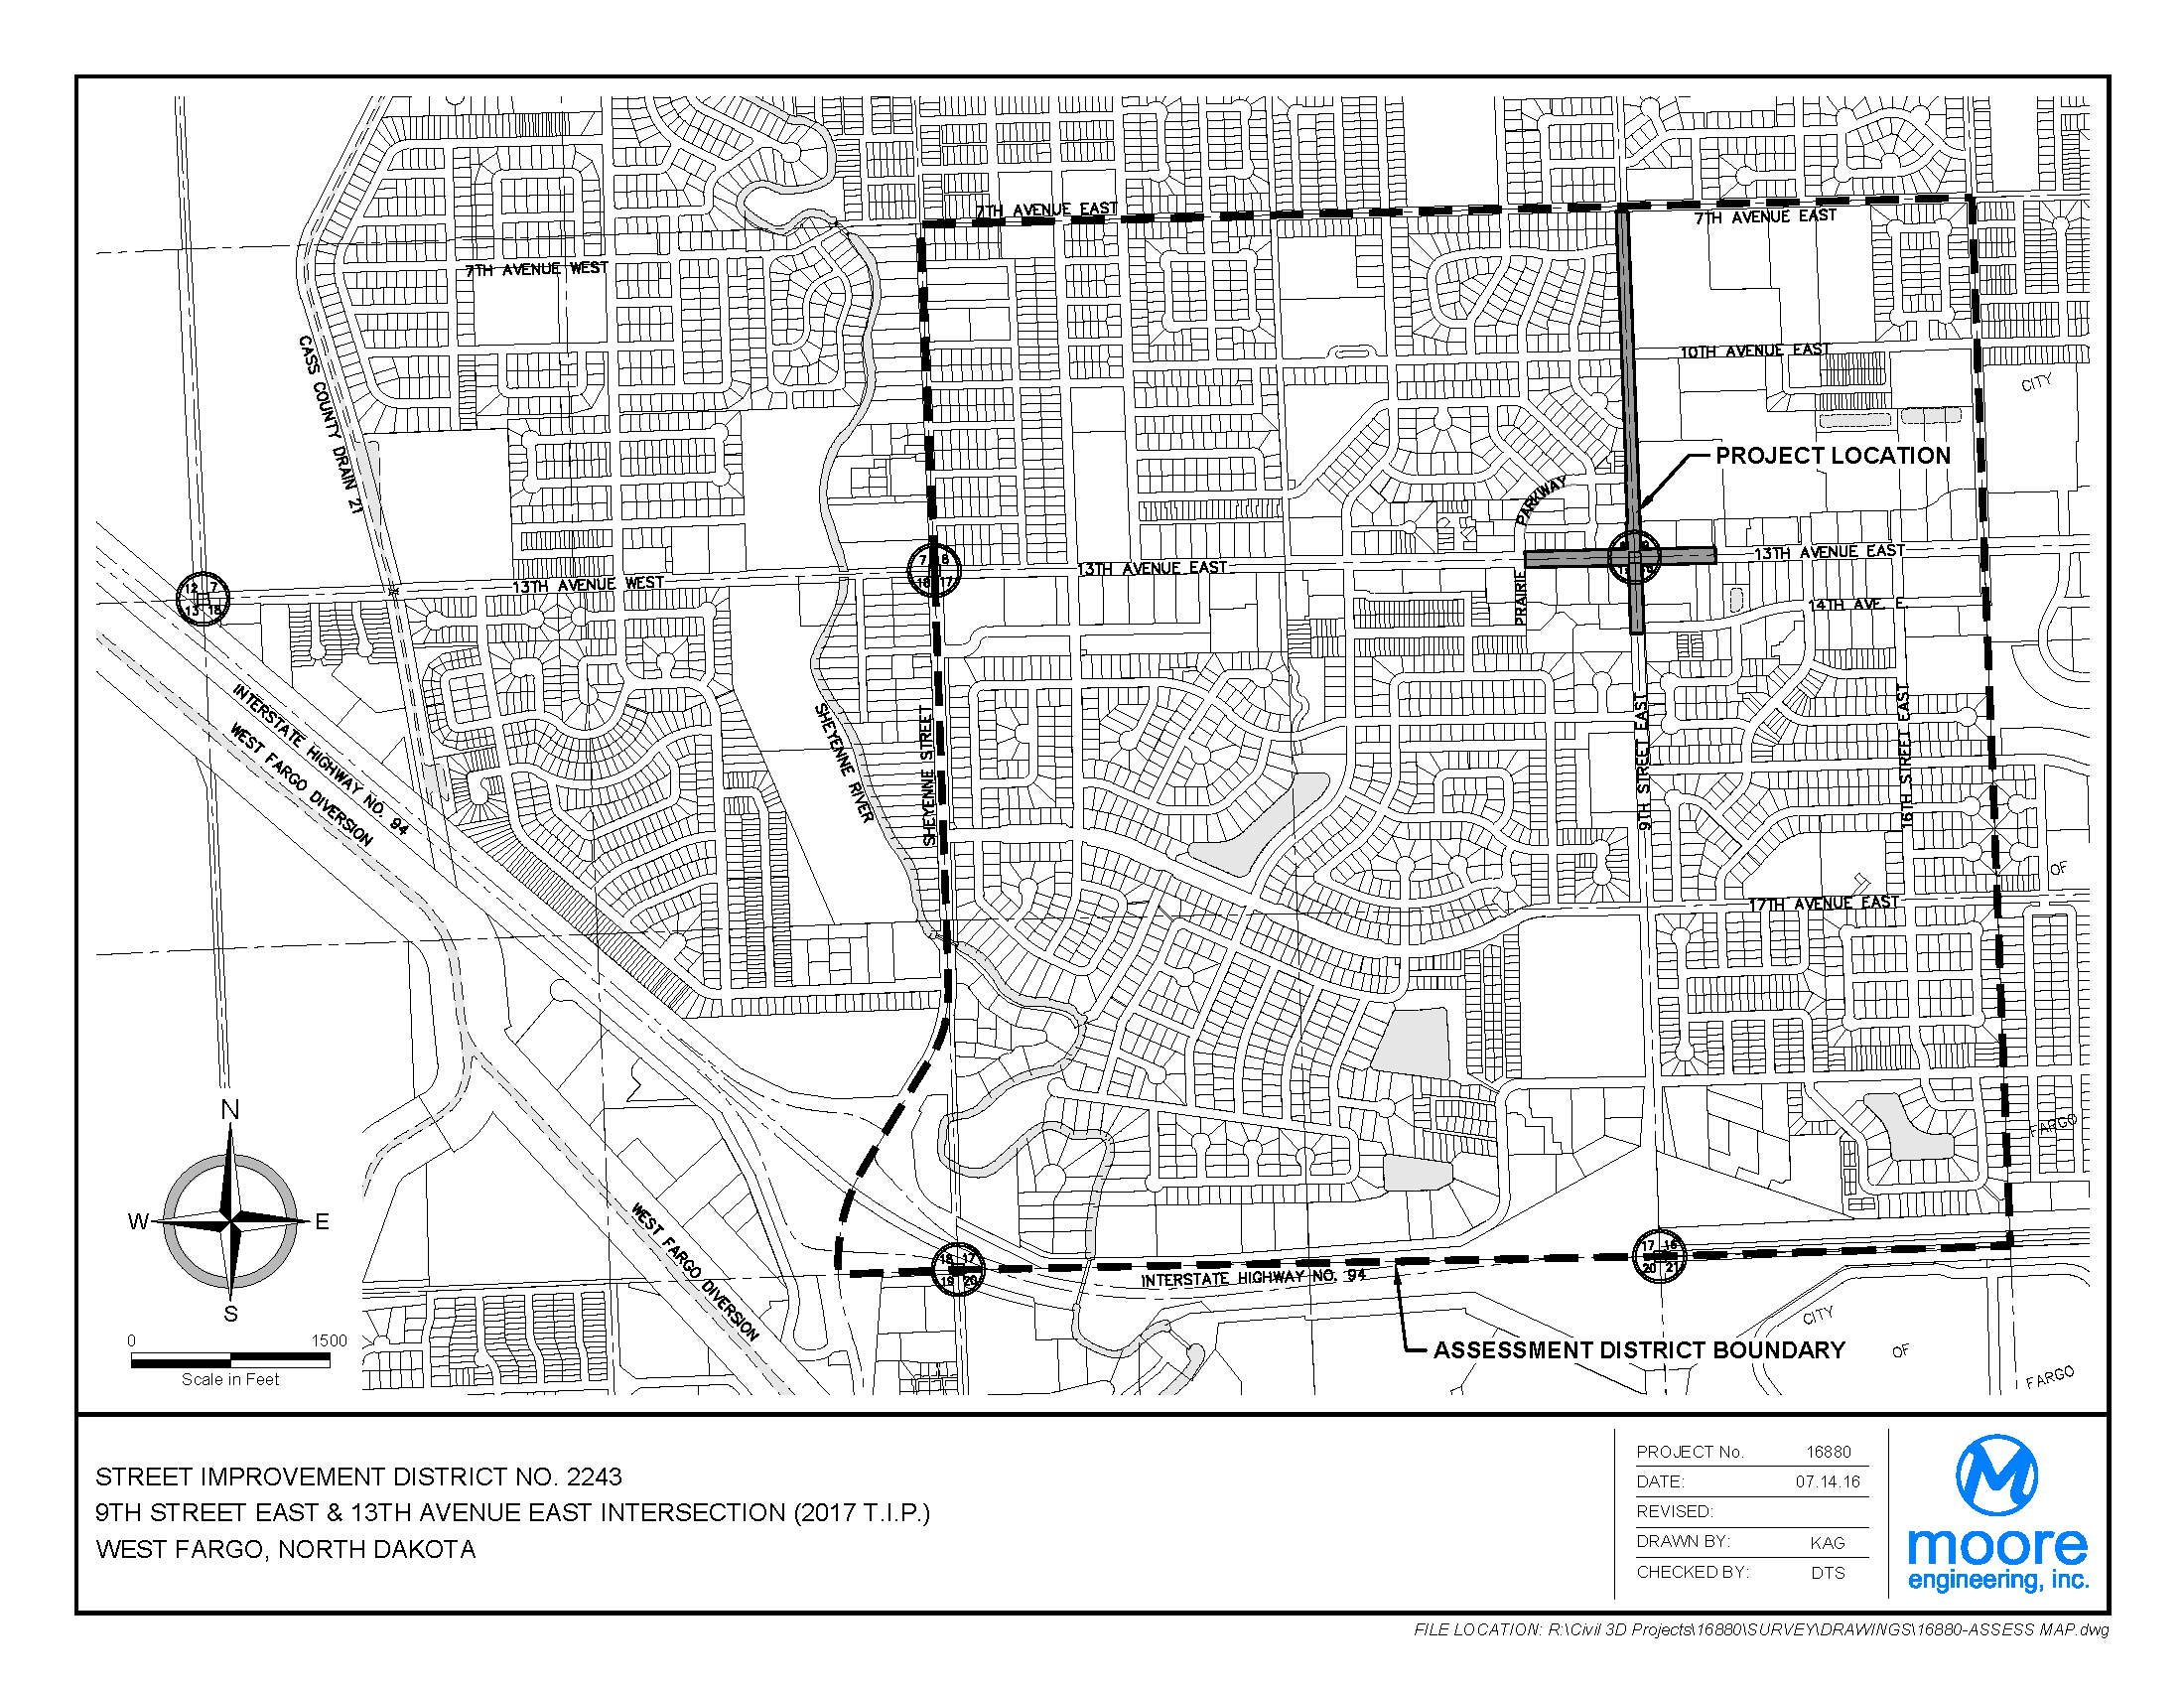 District No. 2243 Ninth Street E. and 13th Avenue E. Intersection Assessment District Boundary Map